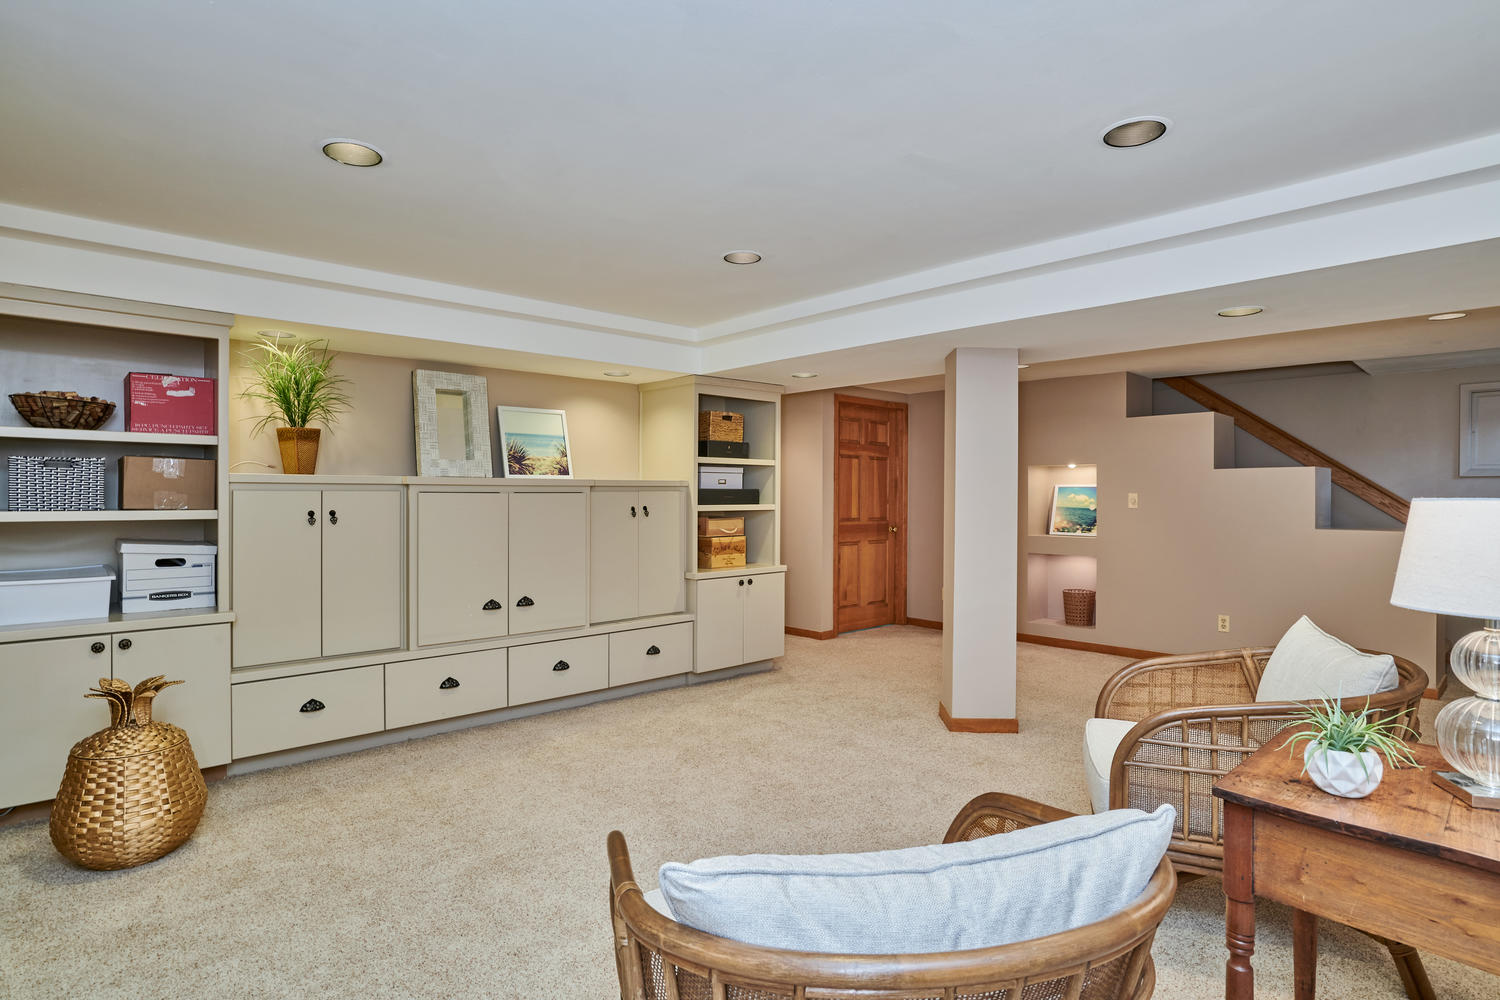 Neat Built-in Storage Options w/Large Storage Room